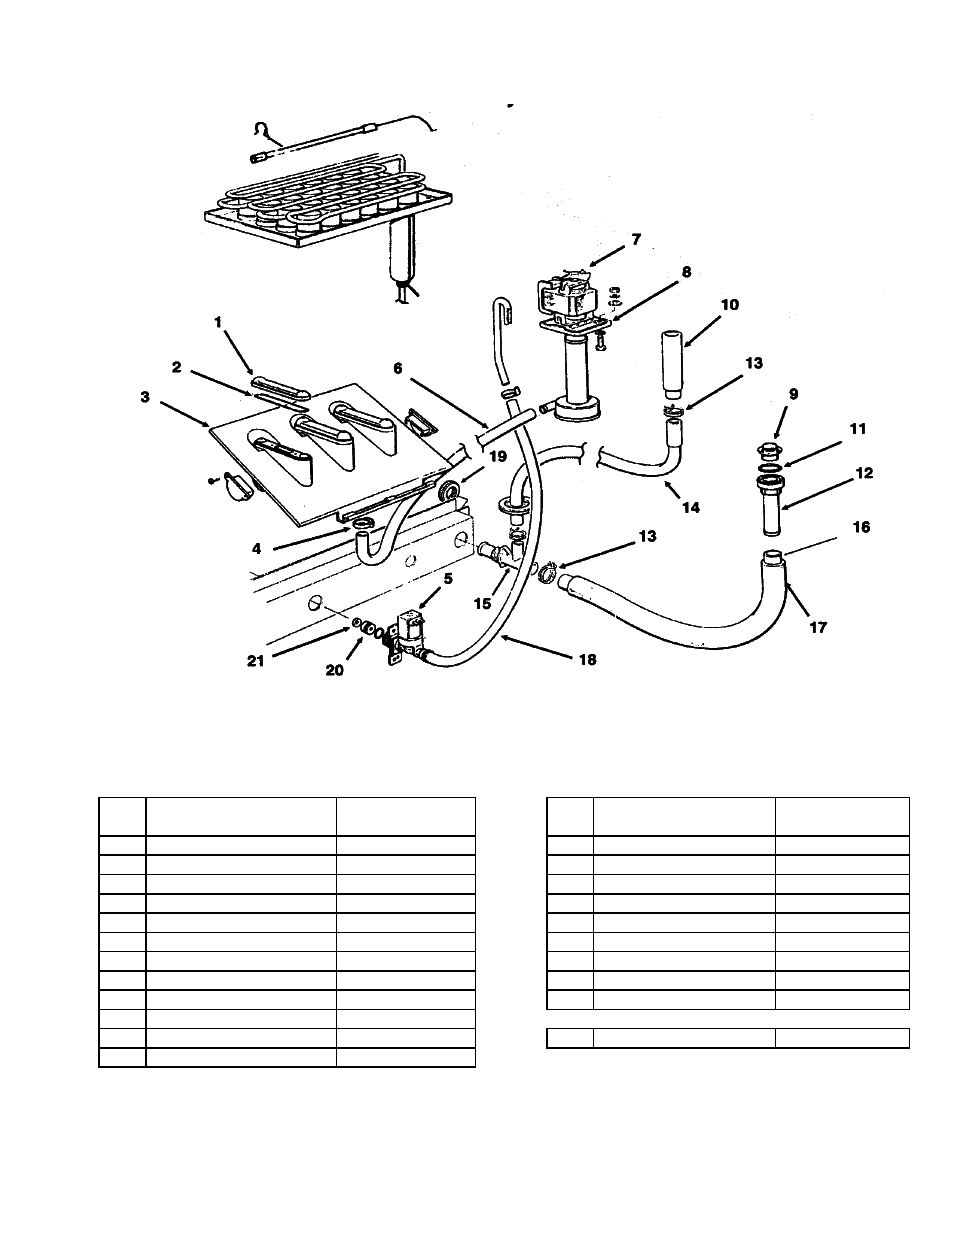 ice o matic iceu060 page5 ice o matic wiring diagram ice o matic logo \u2022 indy500 co  at n-0.co